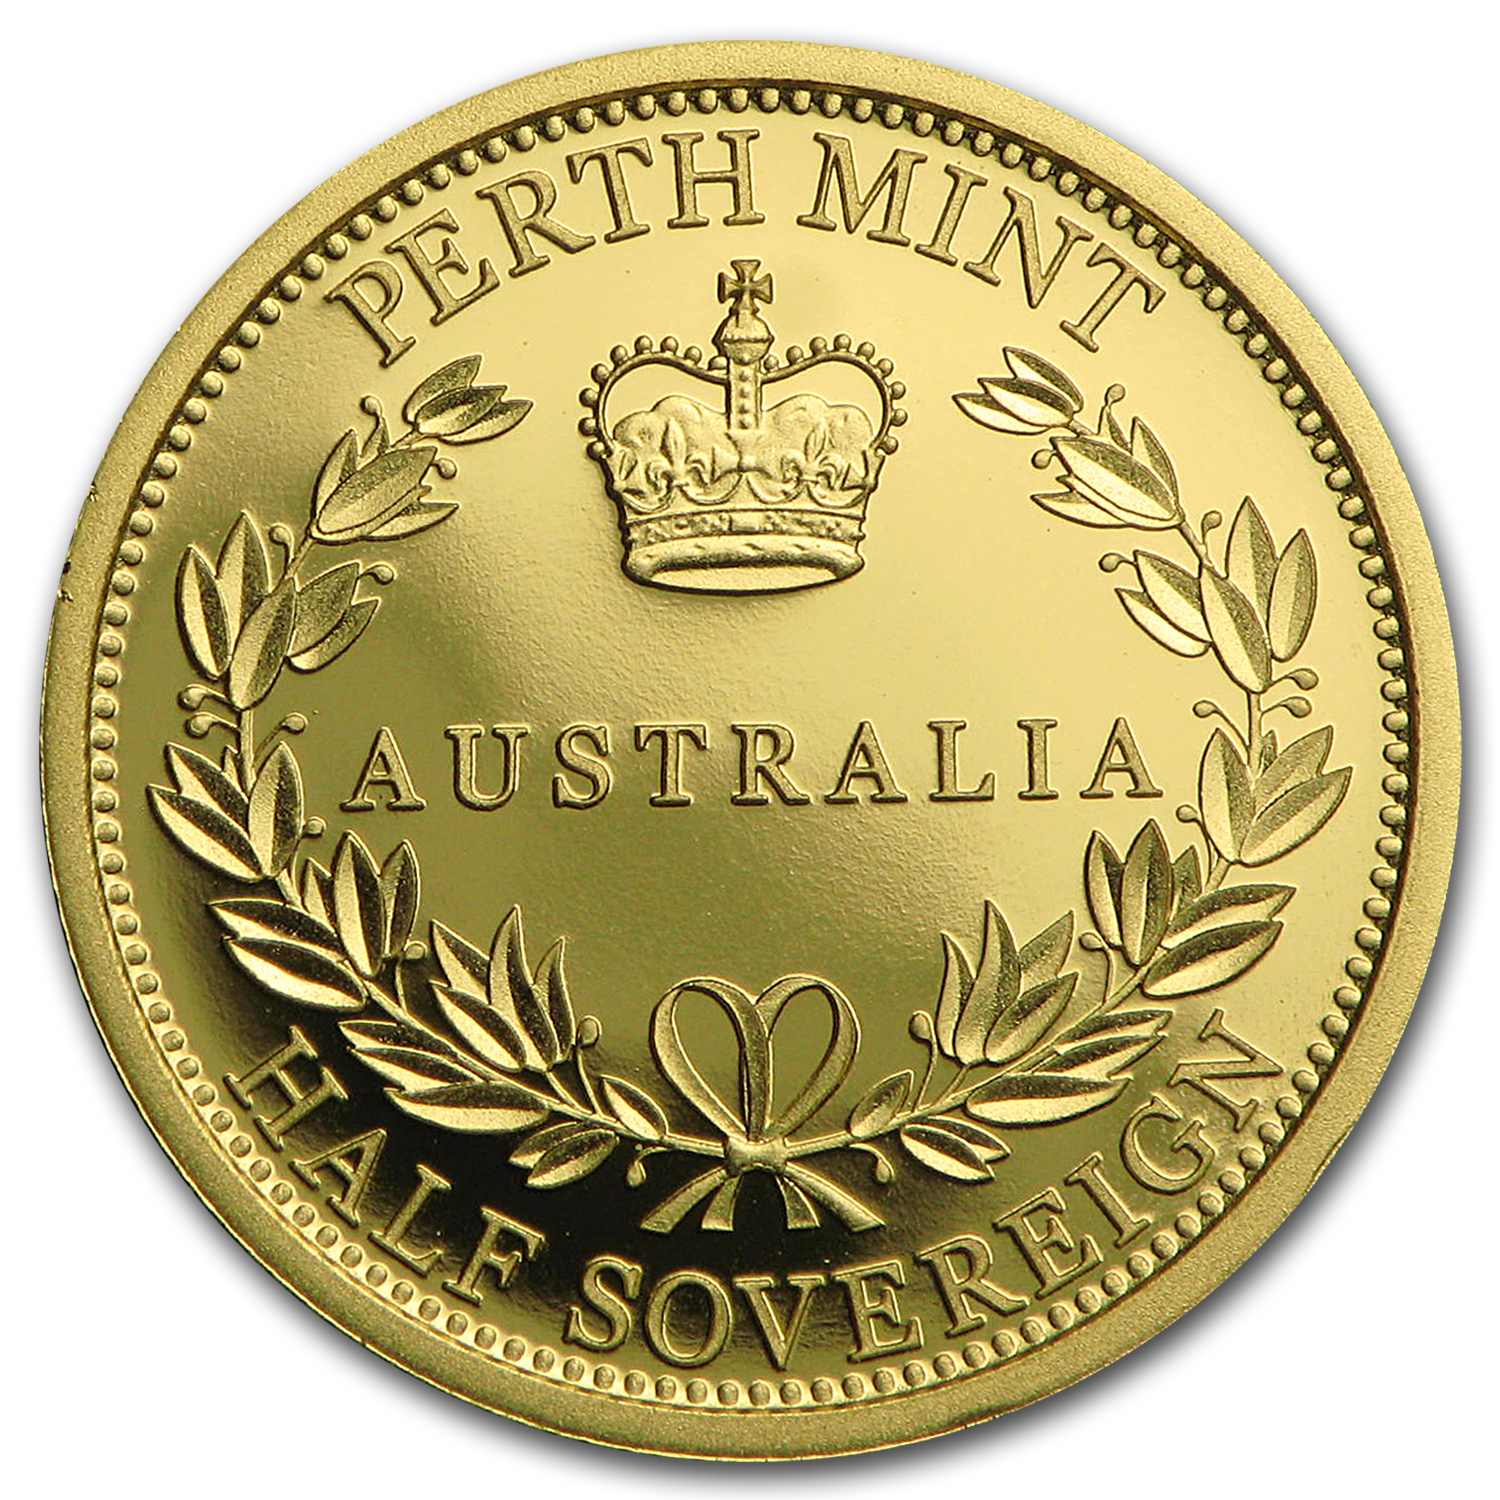 2016 Australia Gold Half Sovereign Proof